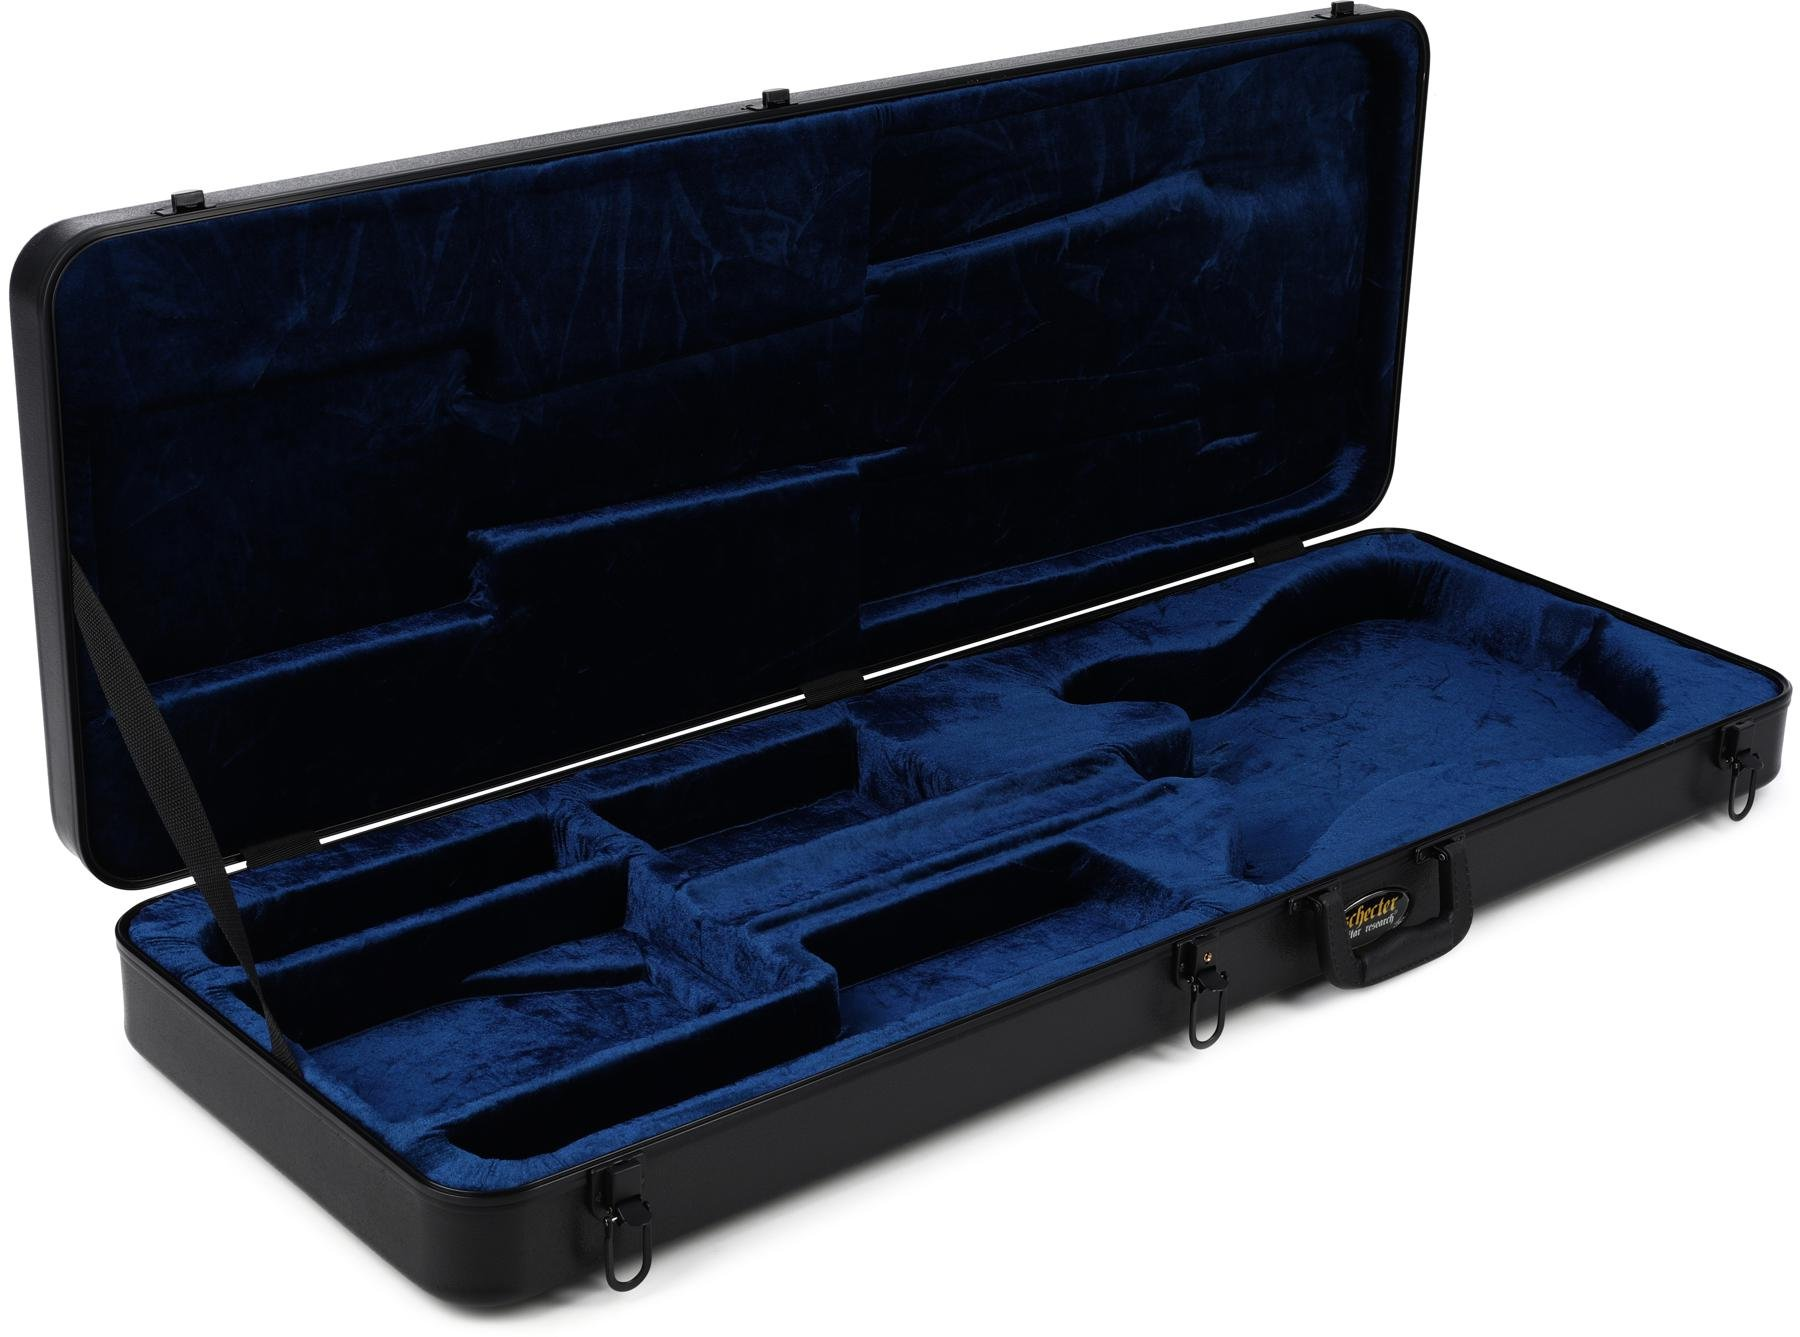 MUSIC STORE Effects Pedal Case Standard S